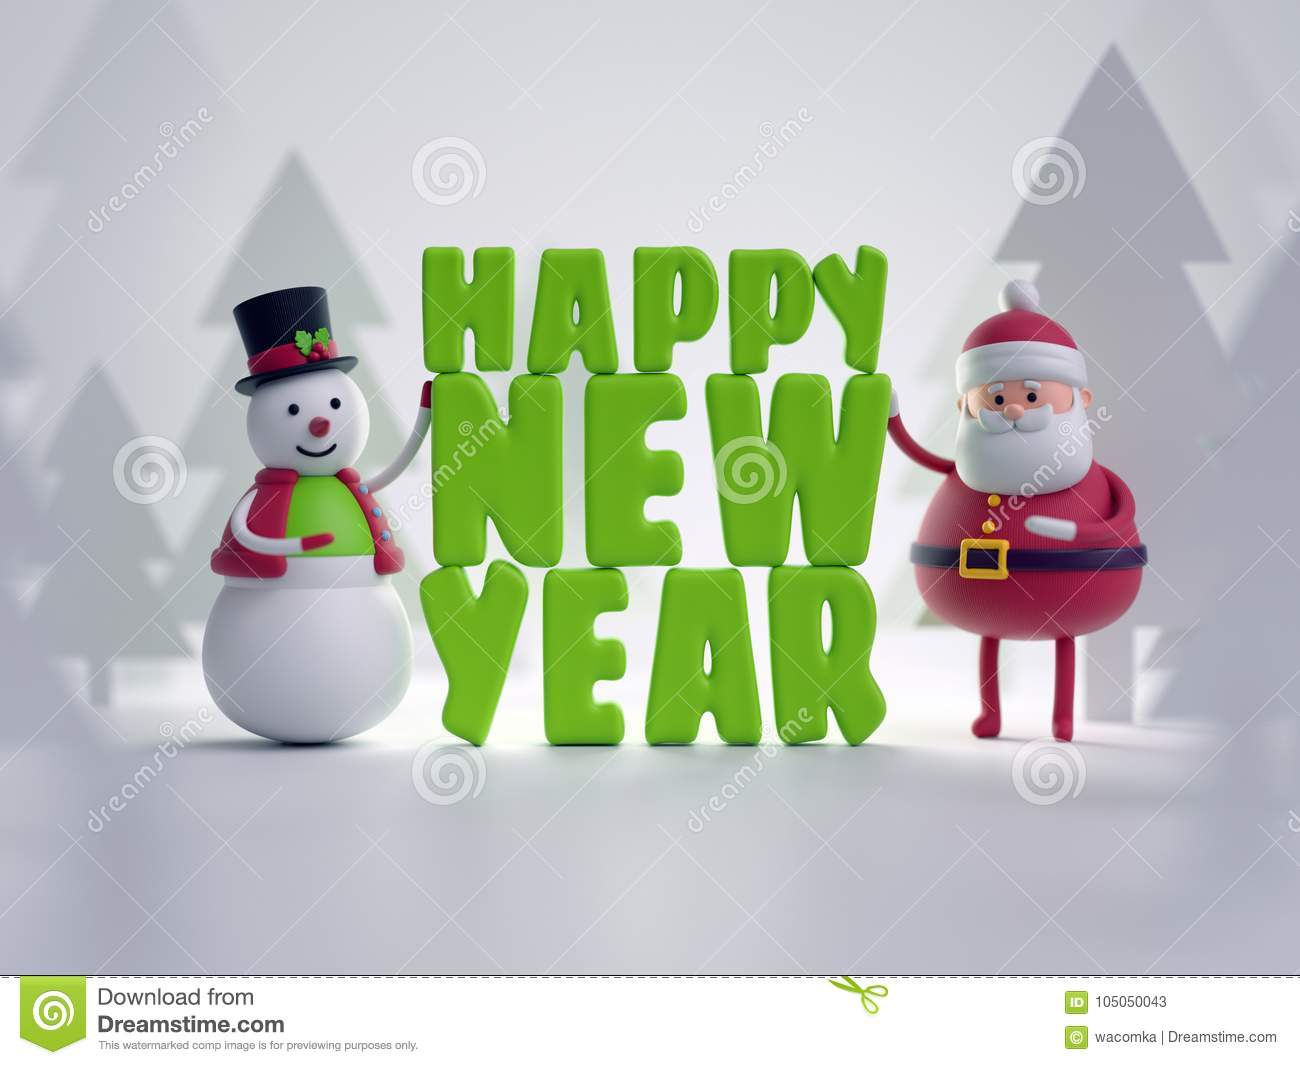 3d render, snowman and Santa Claus, toys, Happy New Year letters